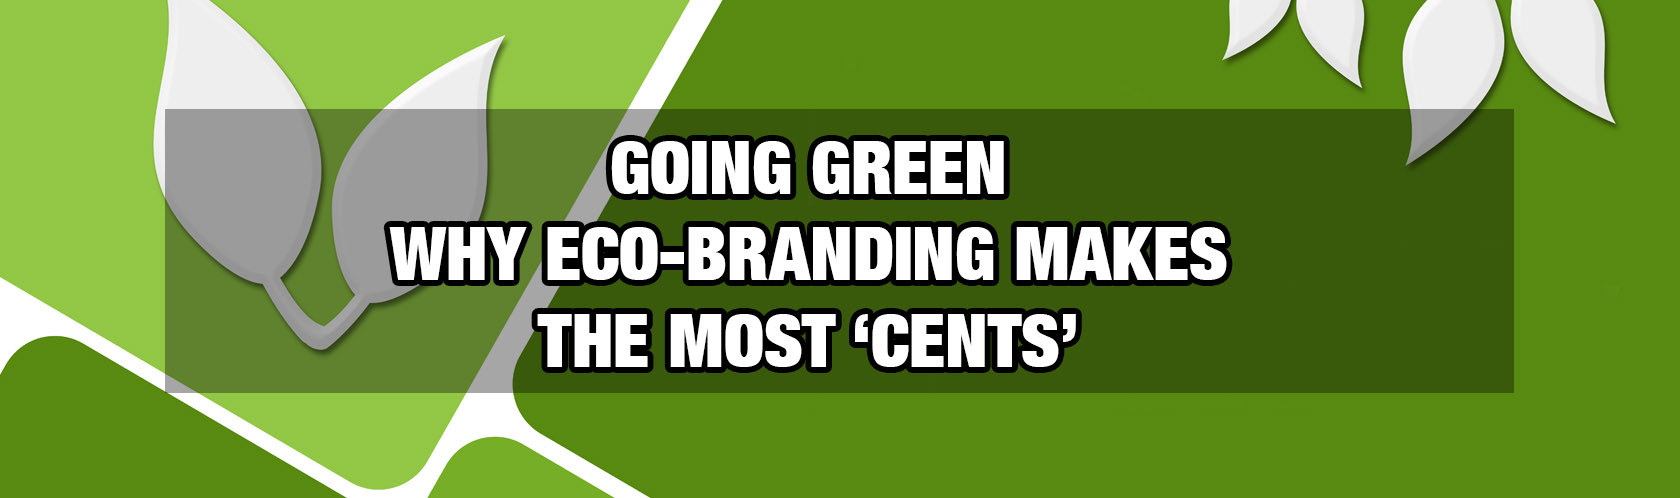 Going Green | Why EcoBranding Makes the Most Cents